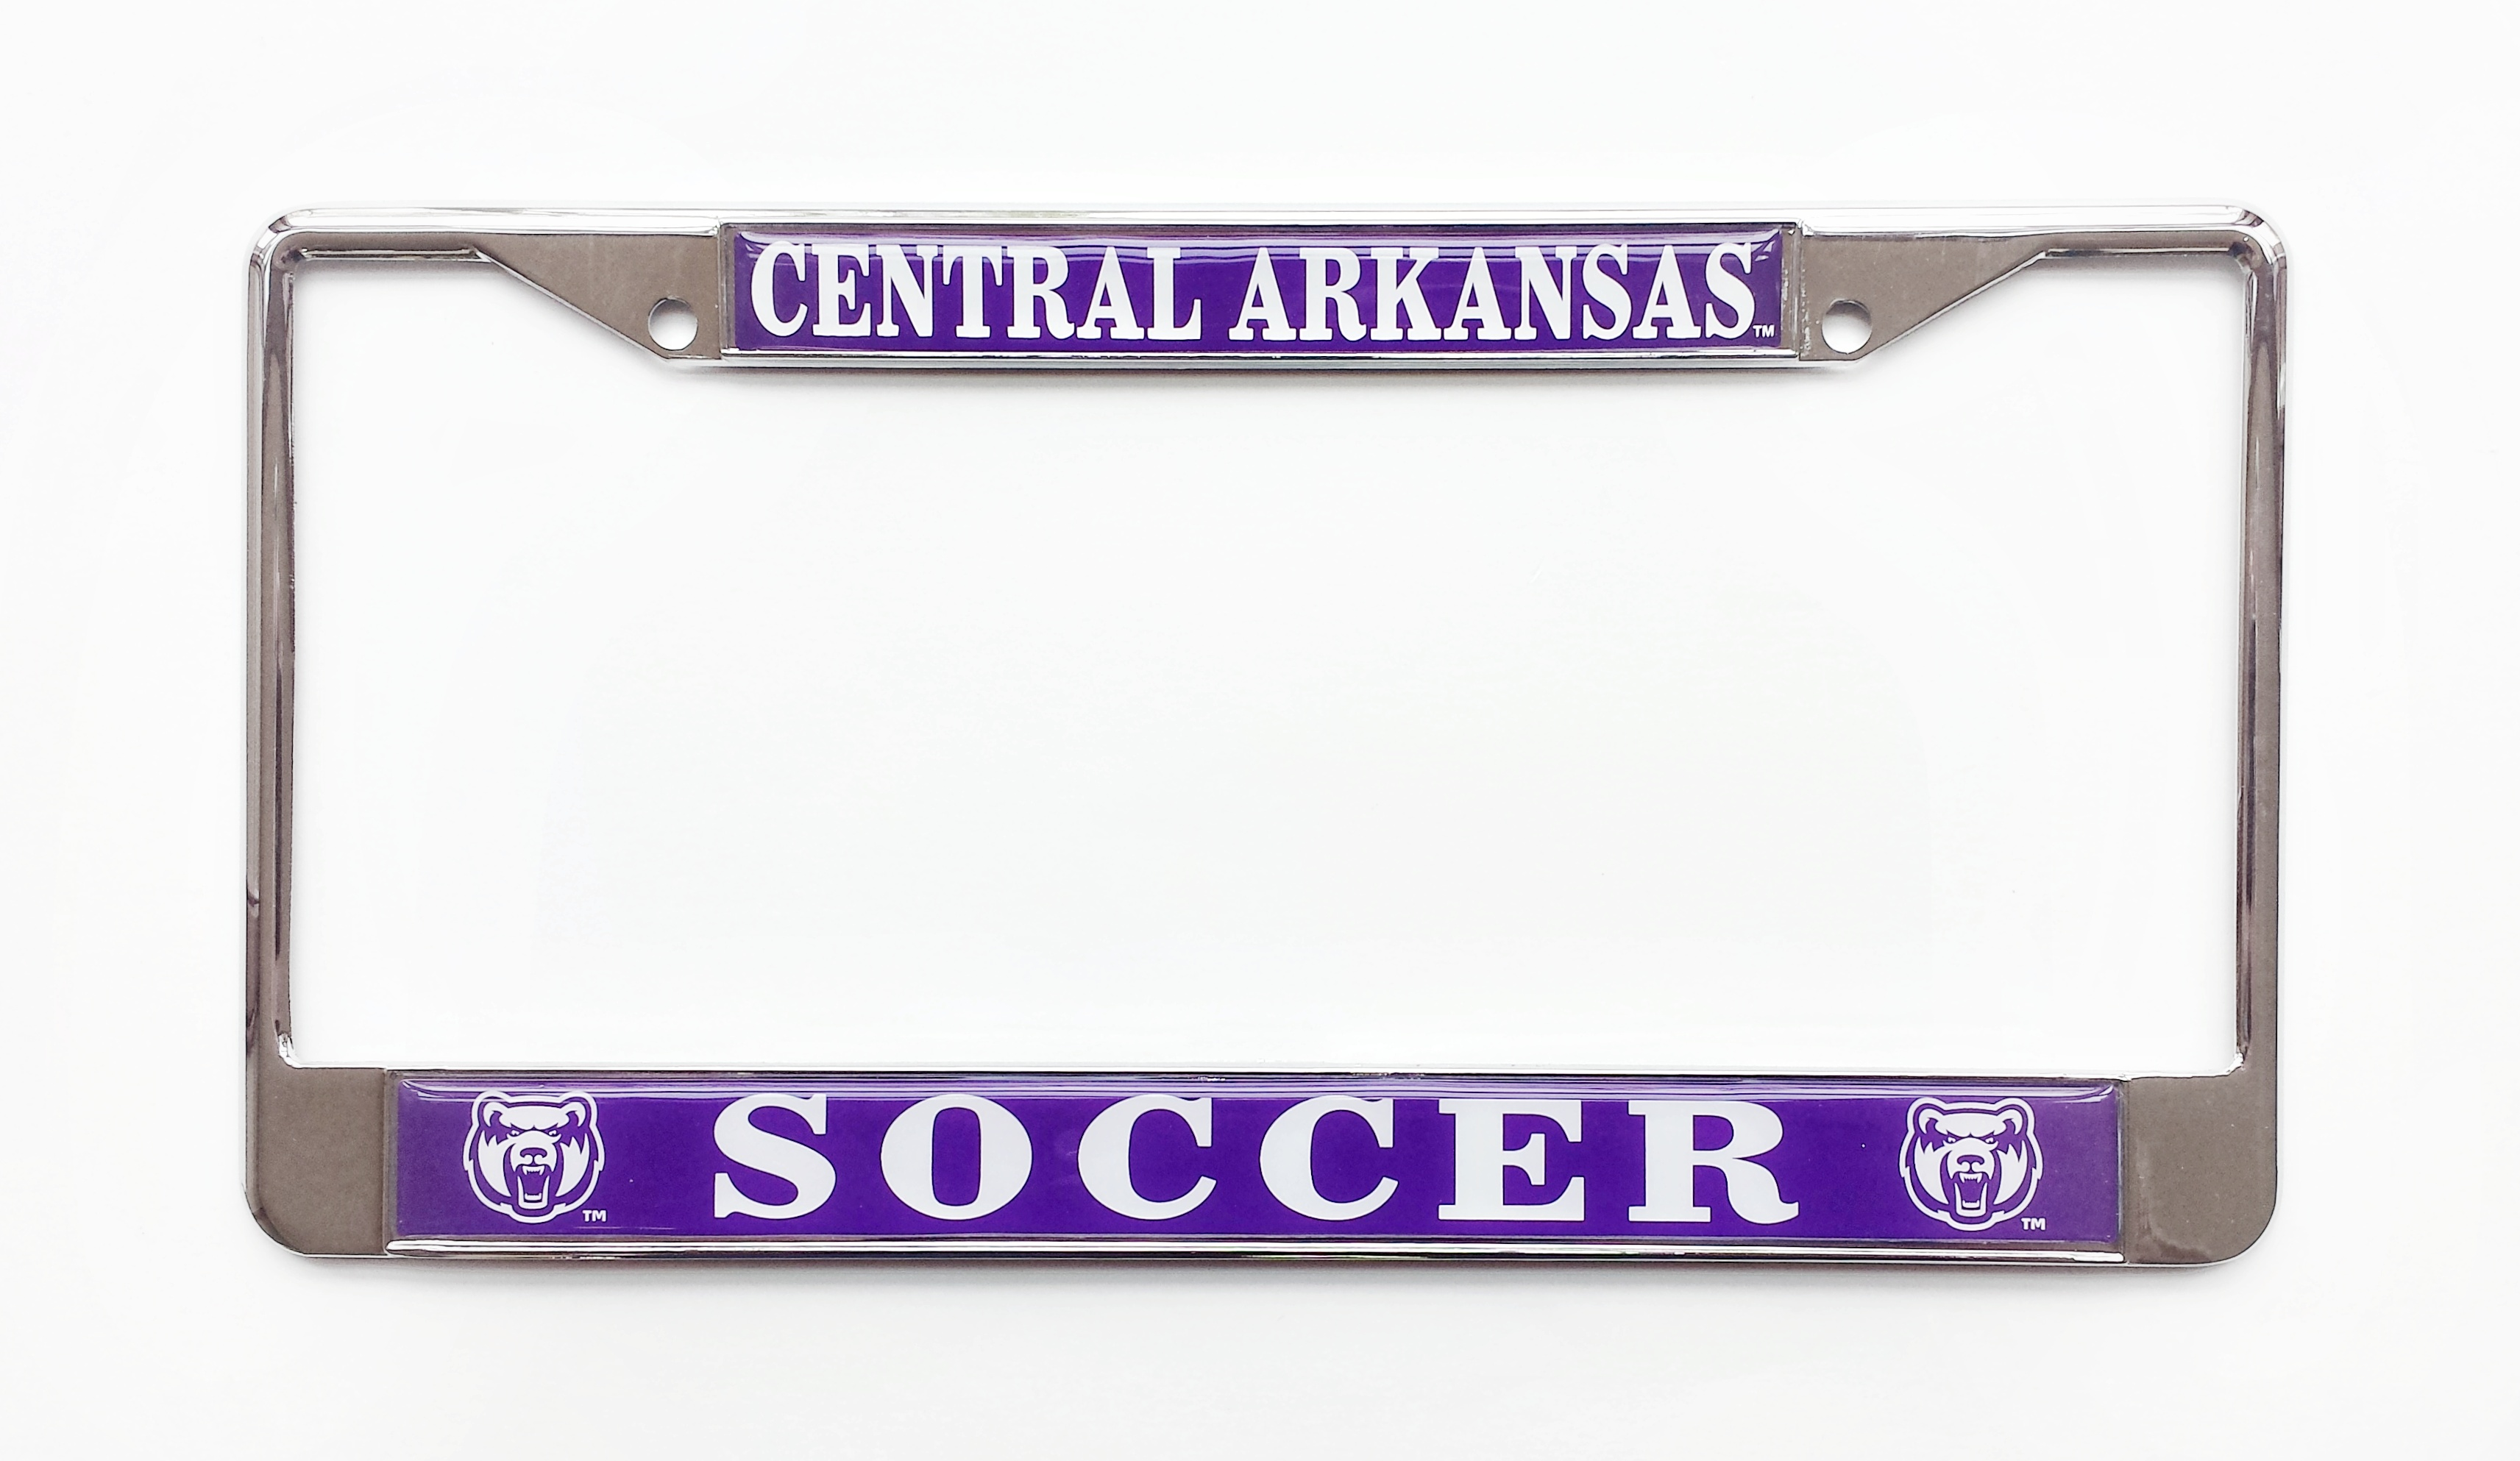 Central Arkansas Soccer License Plate Frame